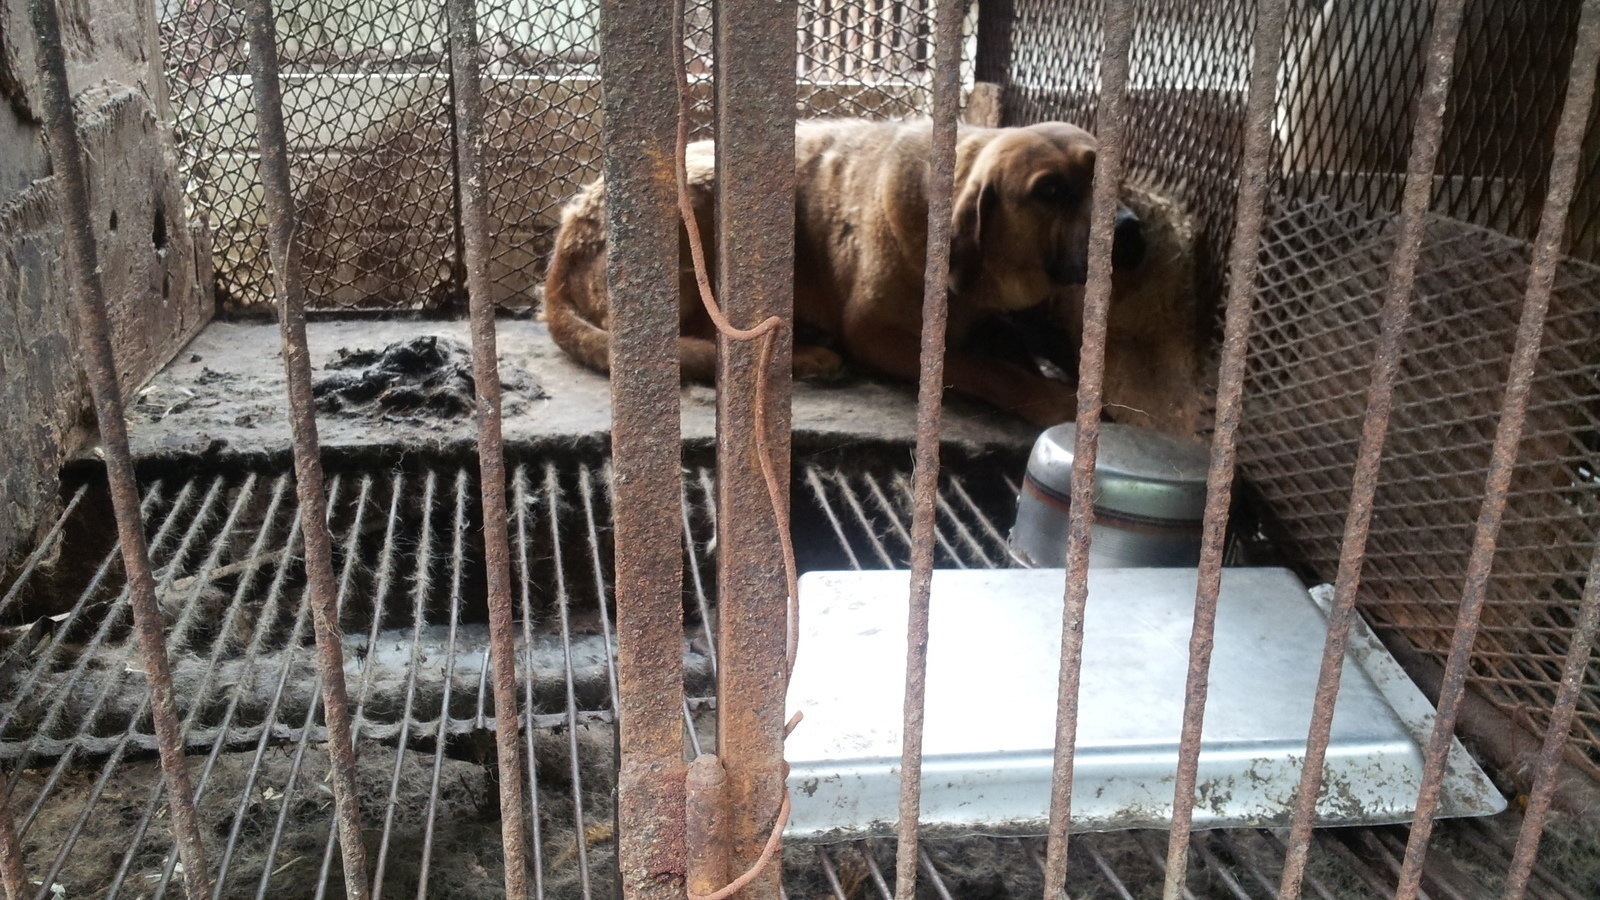 """Petition · Close down the """"Hell Hole"""" illegal dog farm ... - photo#23"""